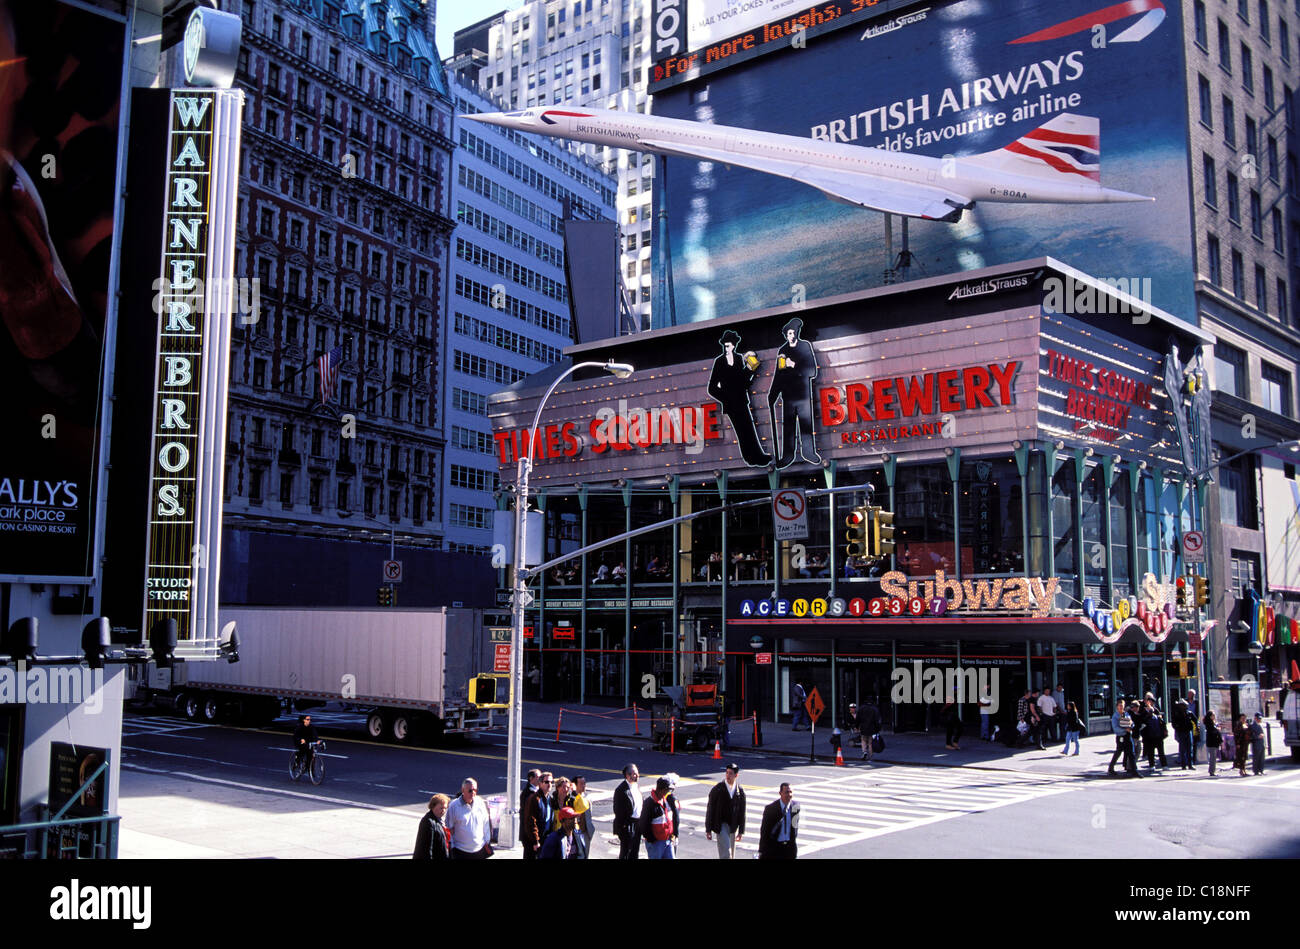 United States, New York City, Manhattan, Times Square, 42nd Street, restaurant and model of Concorde - Stock Image